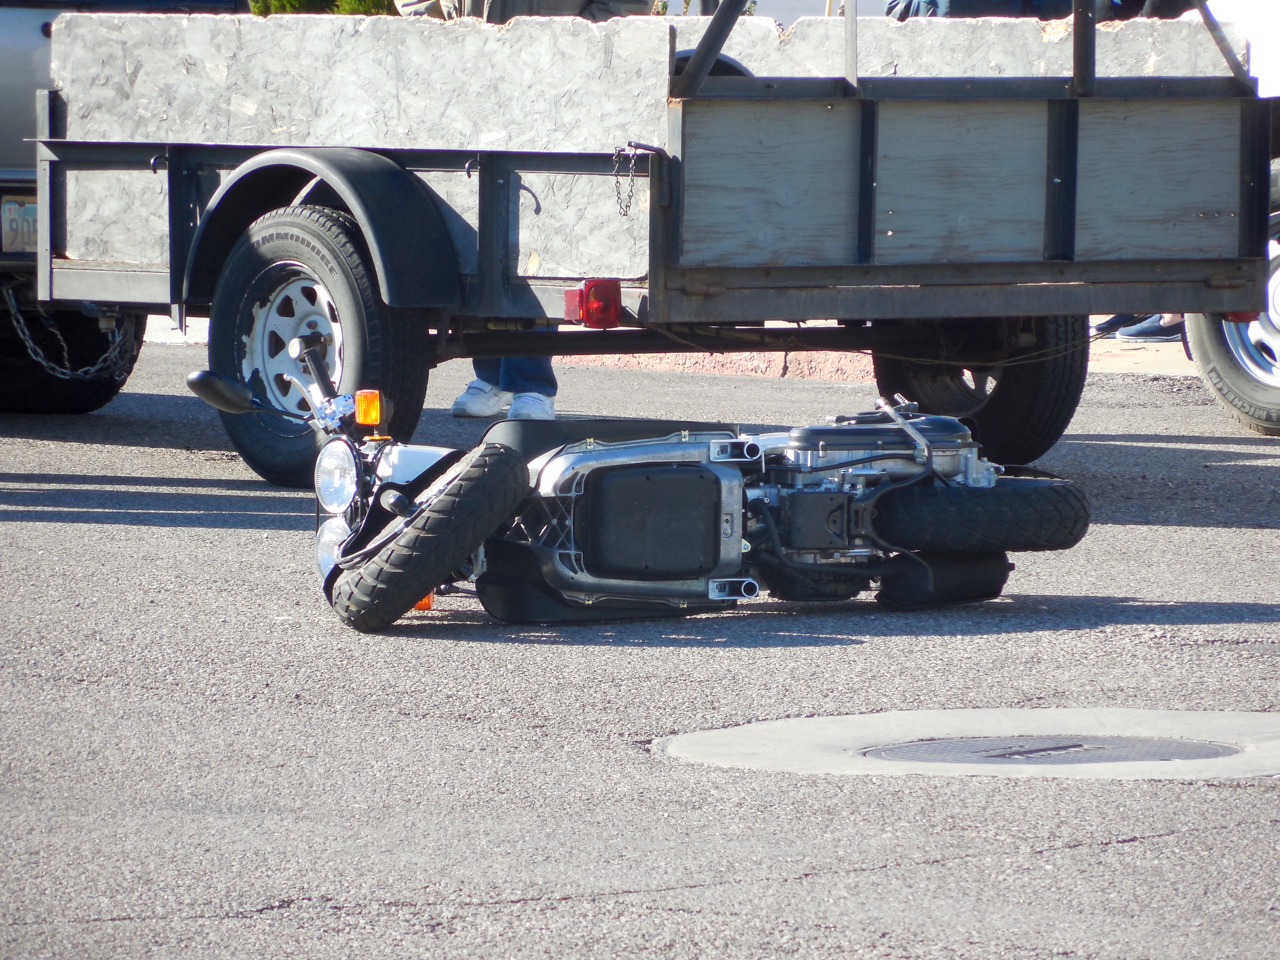 A Honda Ruckus scooter lies on the ground after the second scooter collision within two hours on Main Street, St. George, Utah, Dec. 28, 2016 | Photo by Julie Applegate, St. George News